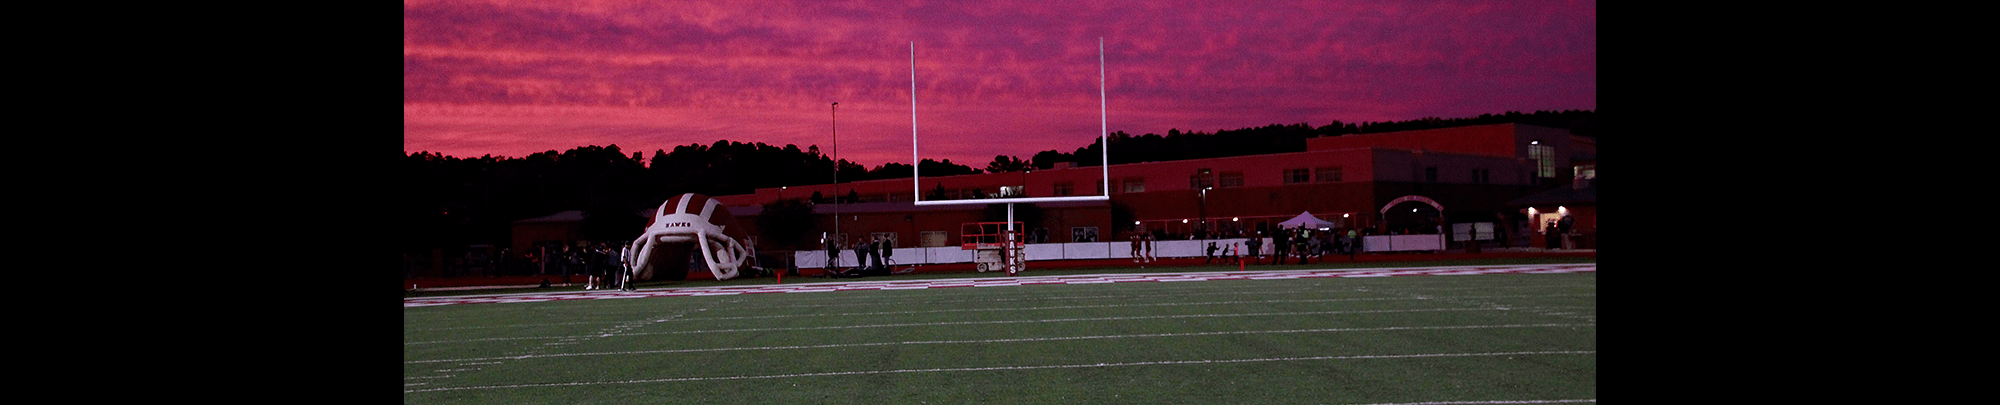 Evening view of the football field